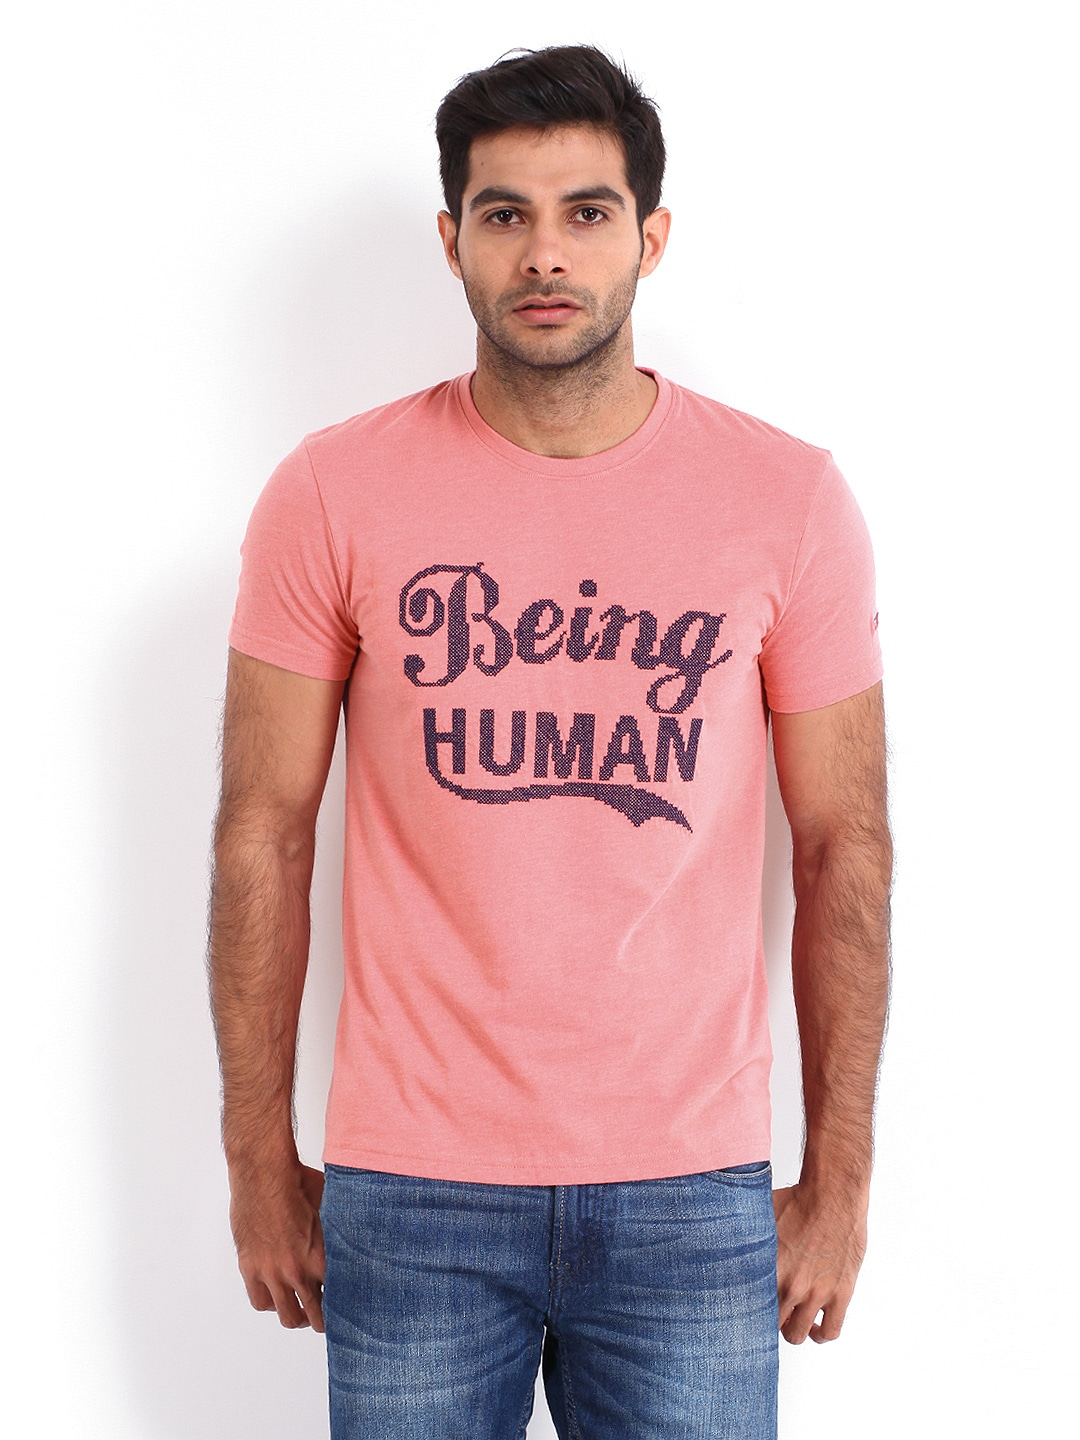 Buy being human clothing men pink t shirt 289 apparel for Buy being human t shirts online